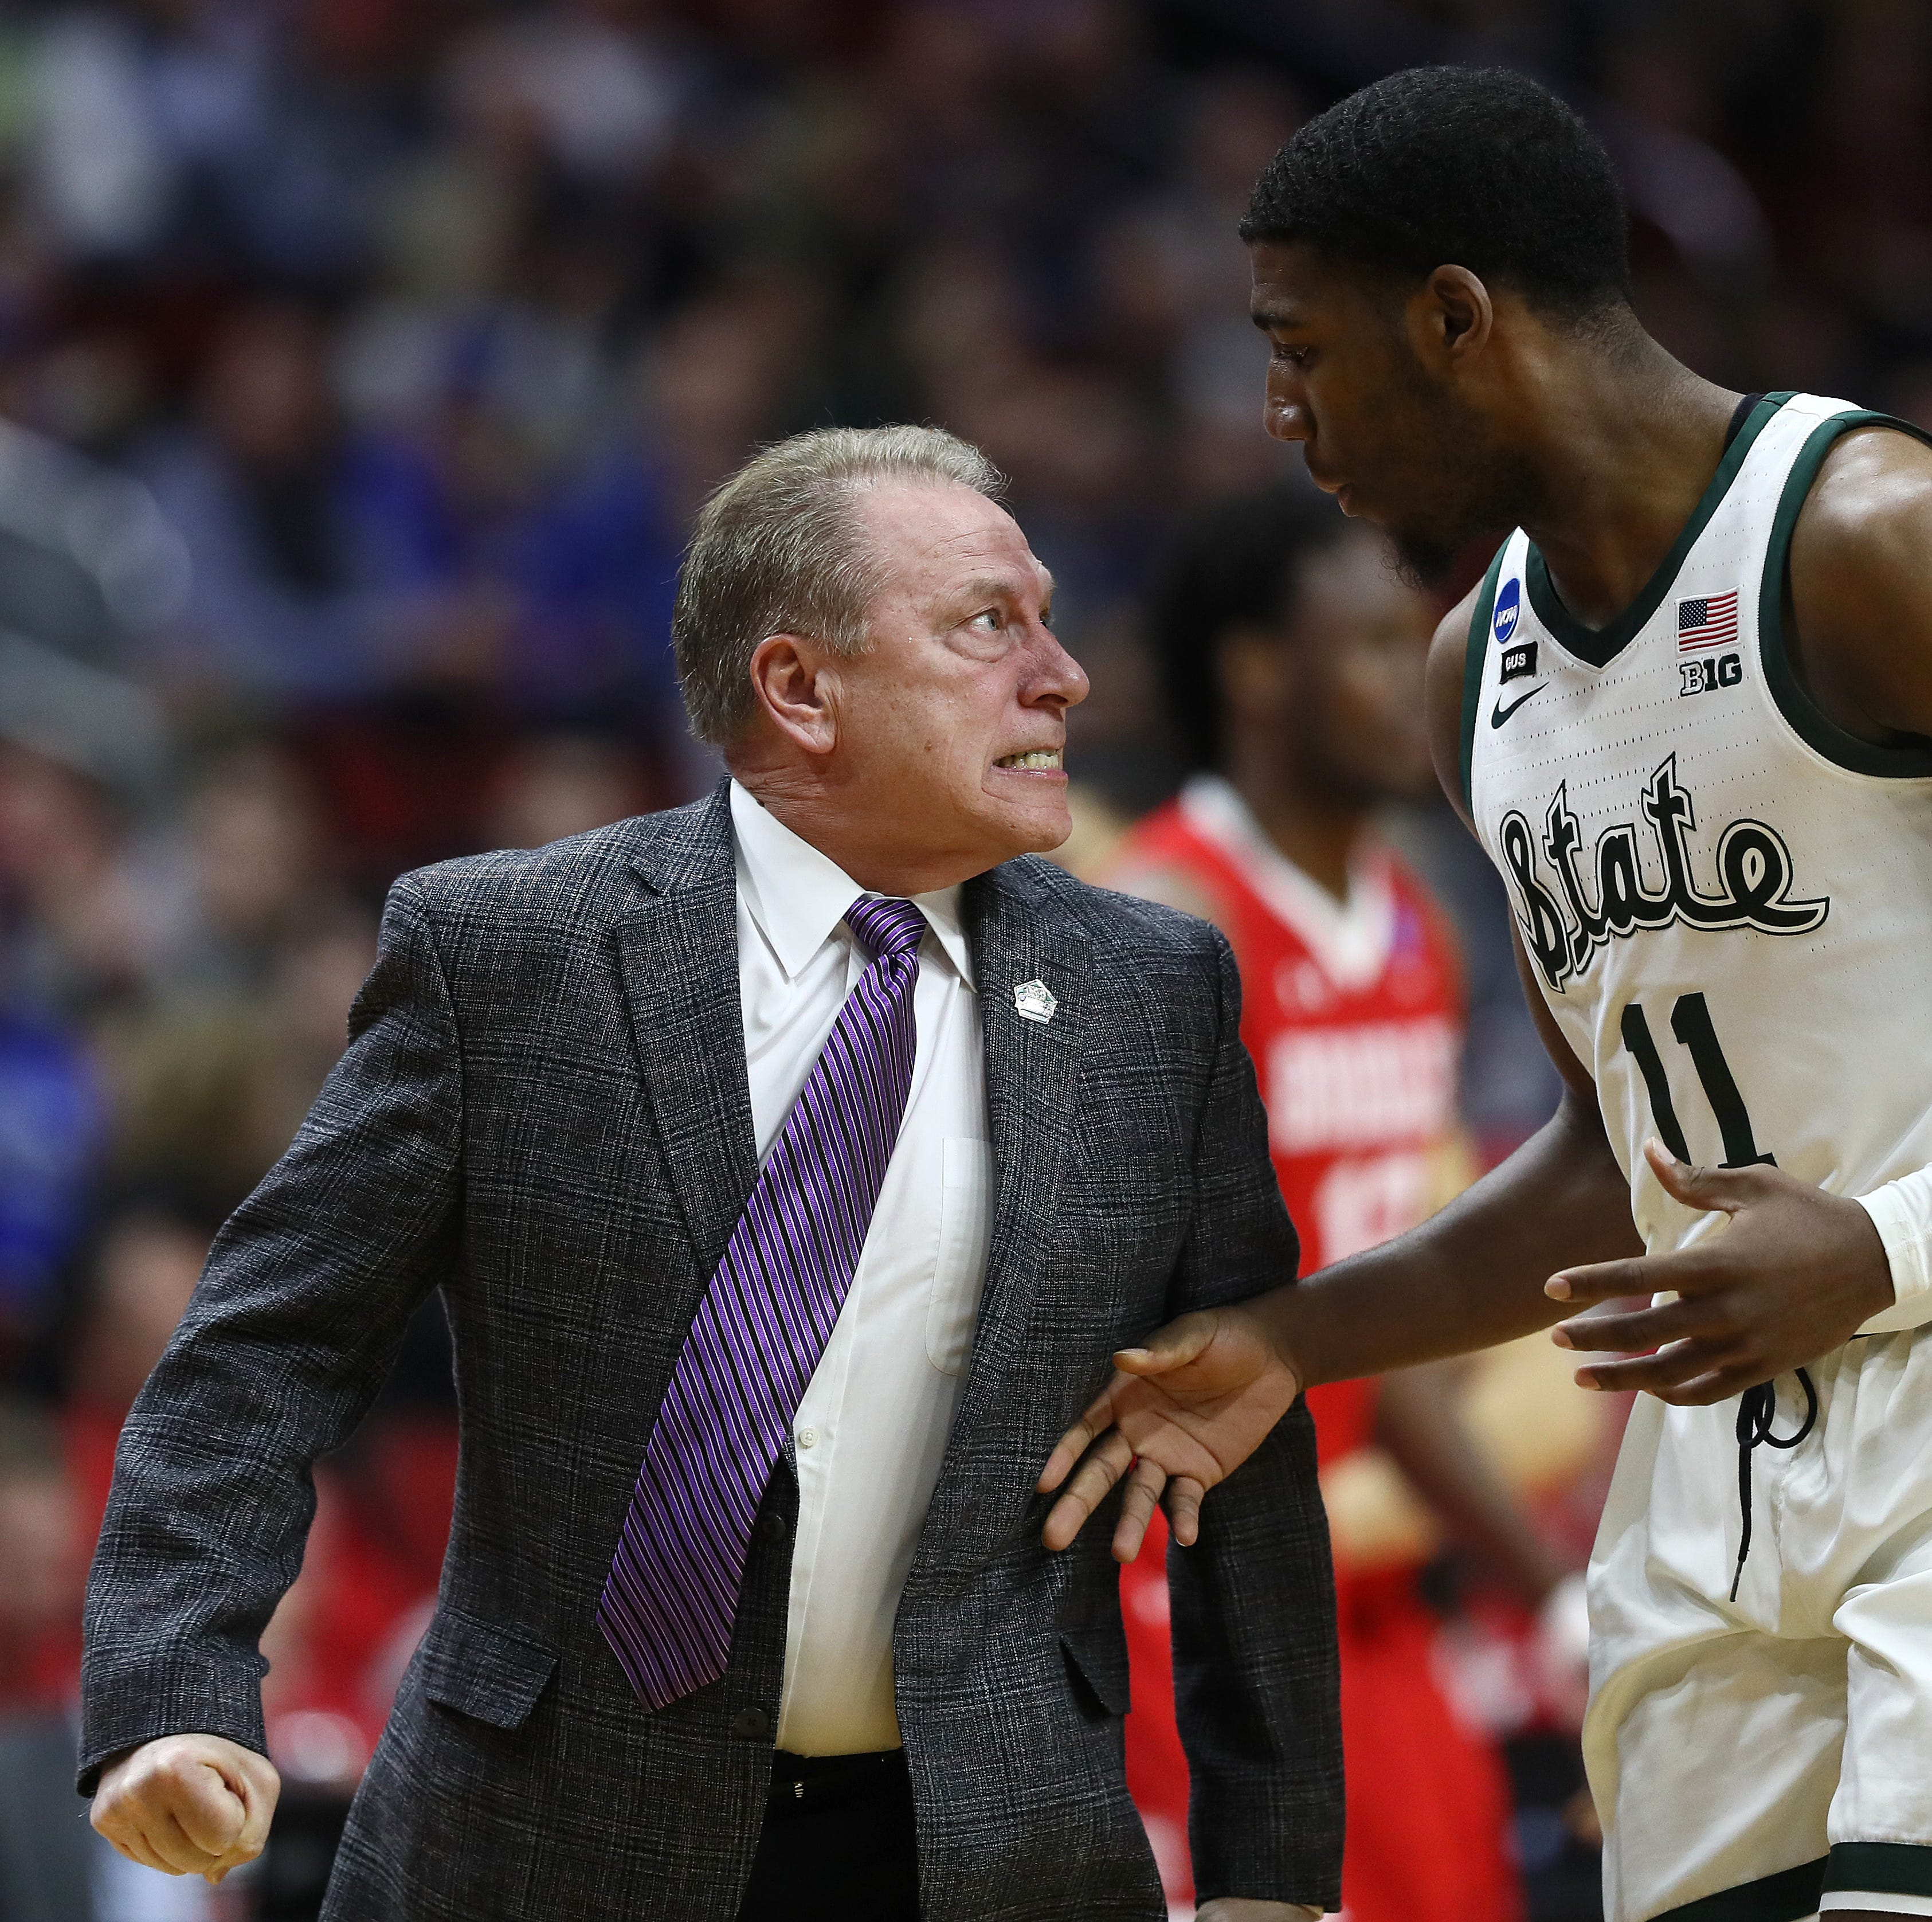 TML:  Tom Izzo is a bully and an embarrassment